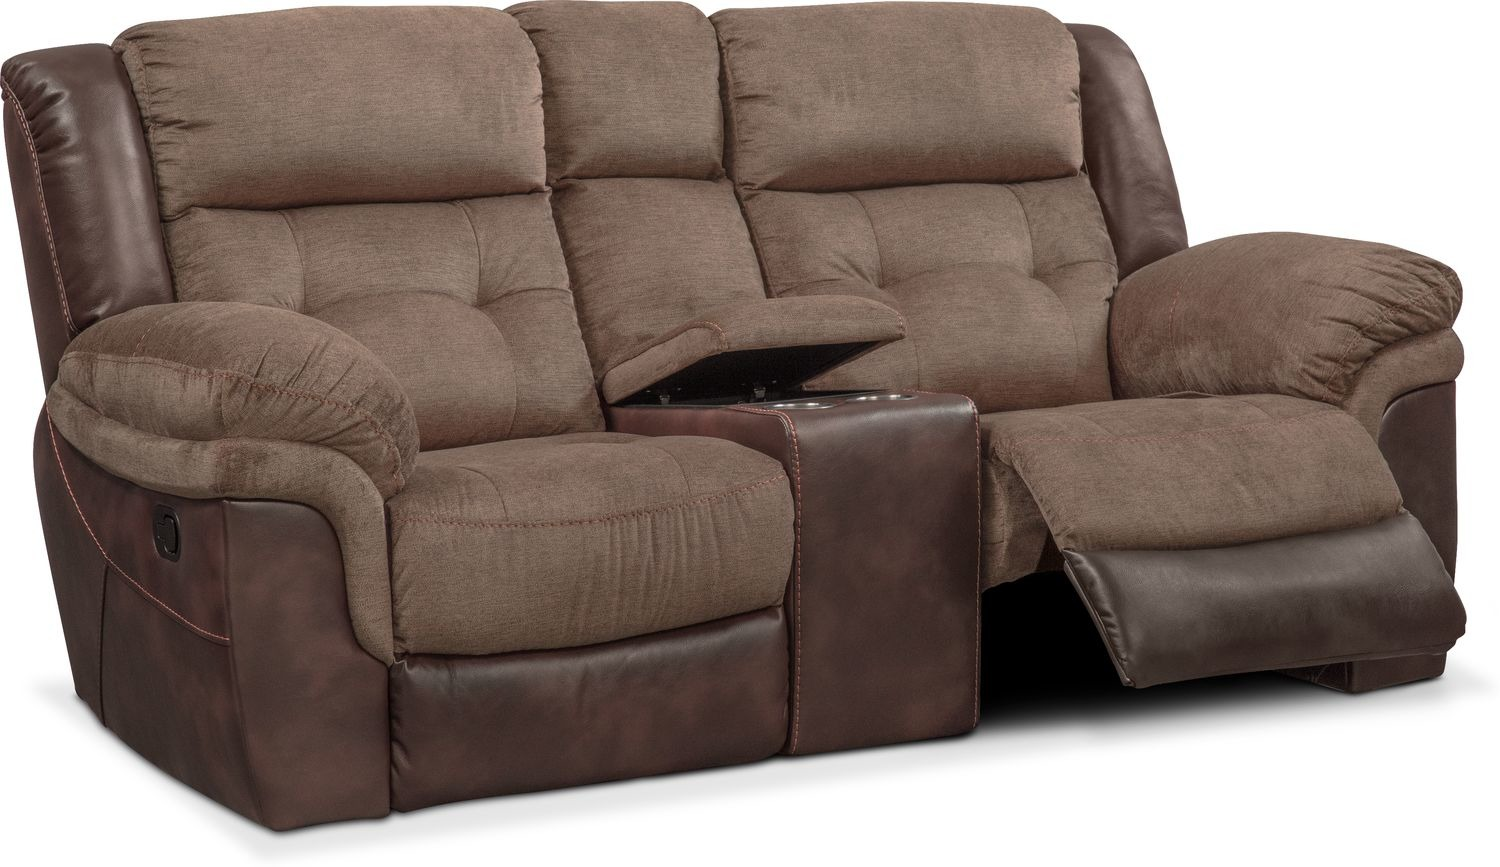 Tacoma Manual Reclining Loveseat with Console | Value City Furniture